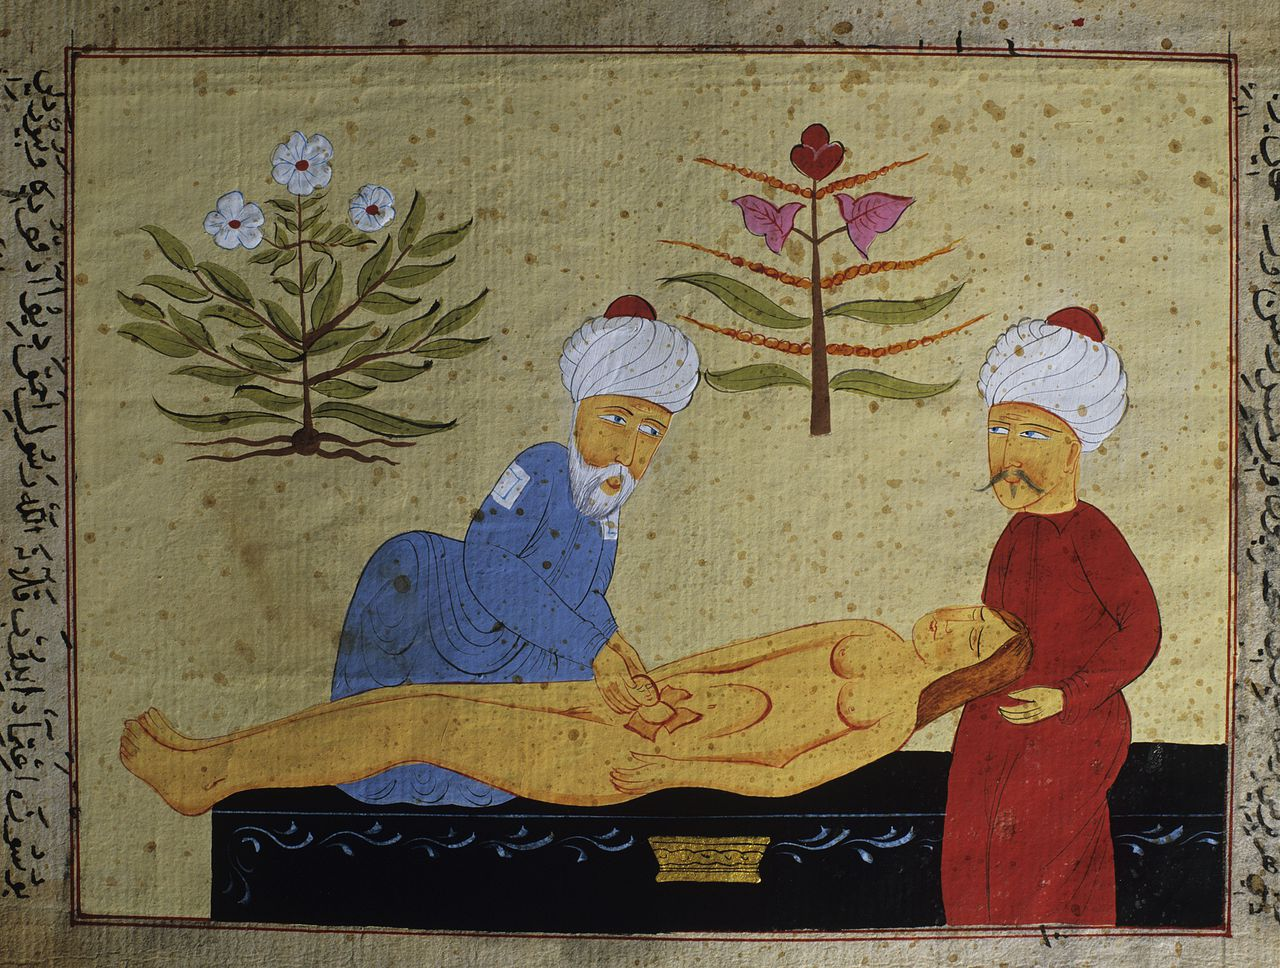 Childbirth by caesarian section, Ottoman manuscript Photo Credit: [ The Art Archive / University Library Istanbul / Gianni Dagli Orti ]